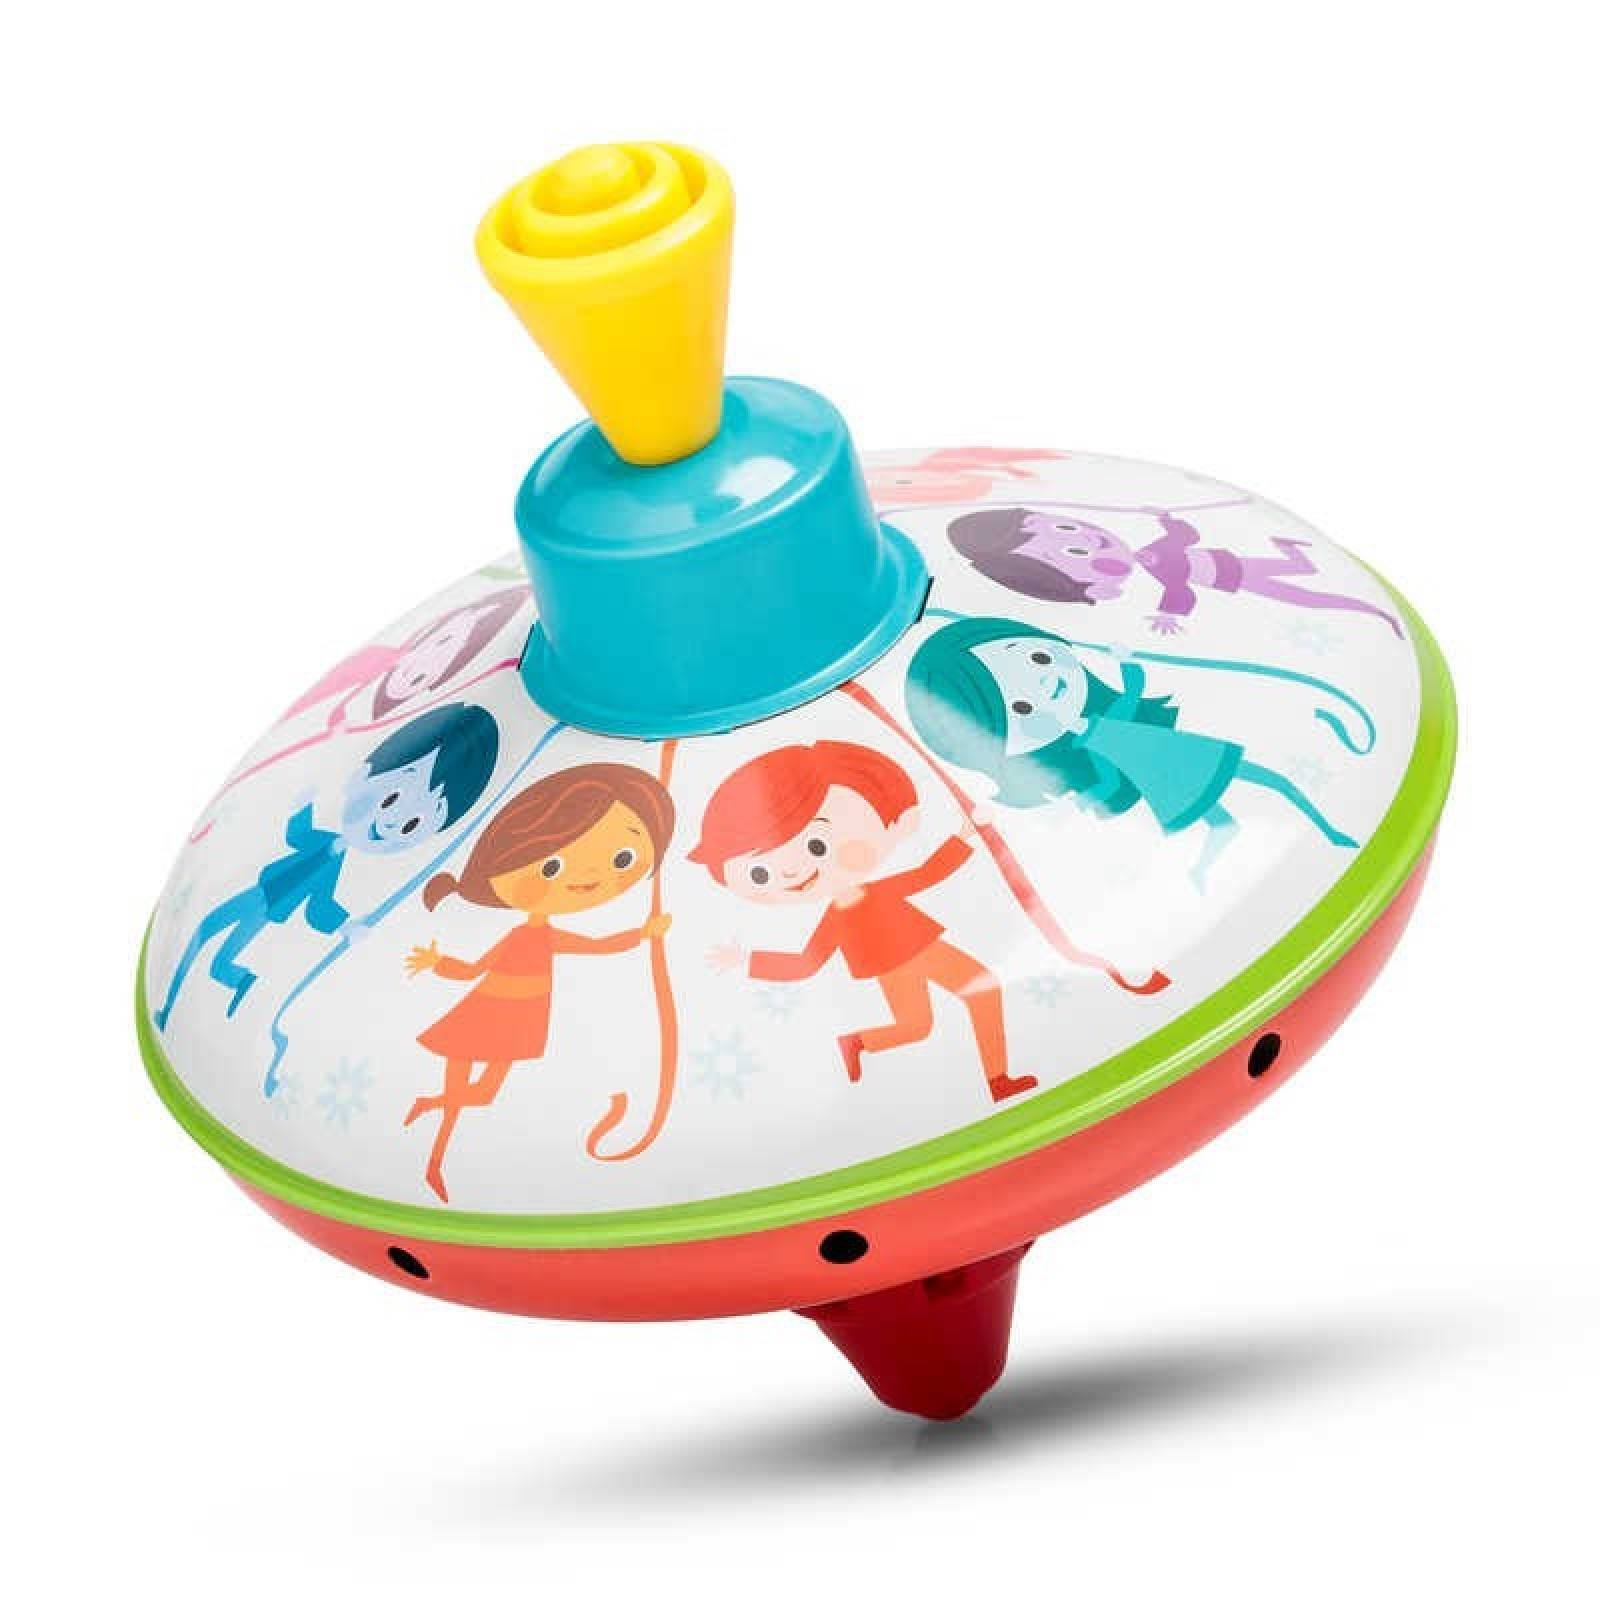 Classic Small Tin Spinning Top With Dancing Children 3+